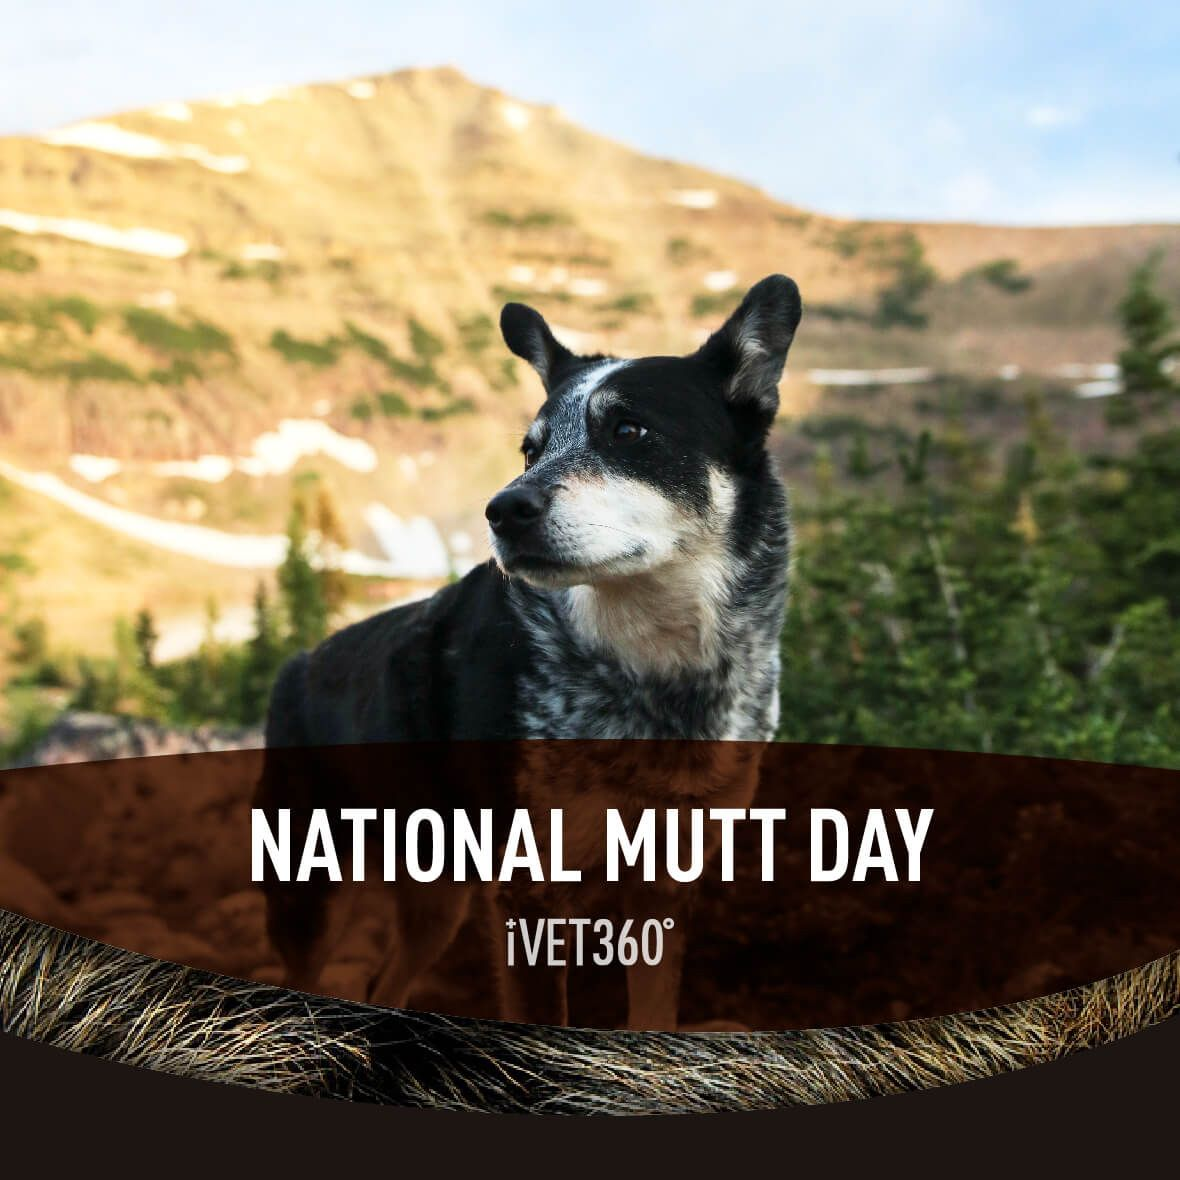 National Mutt Day National mutt day, Pet holiday, Mutt